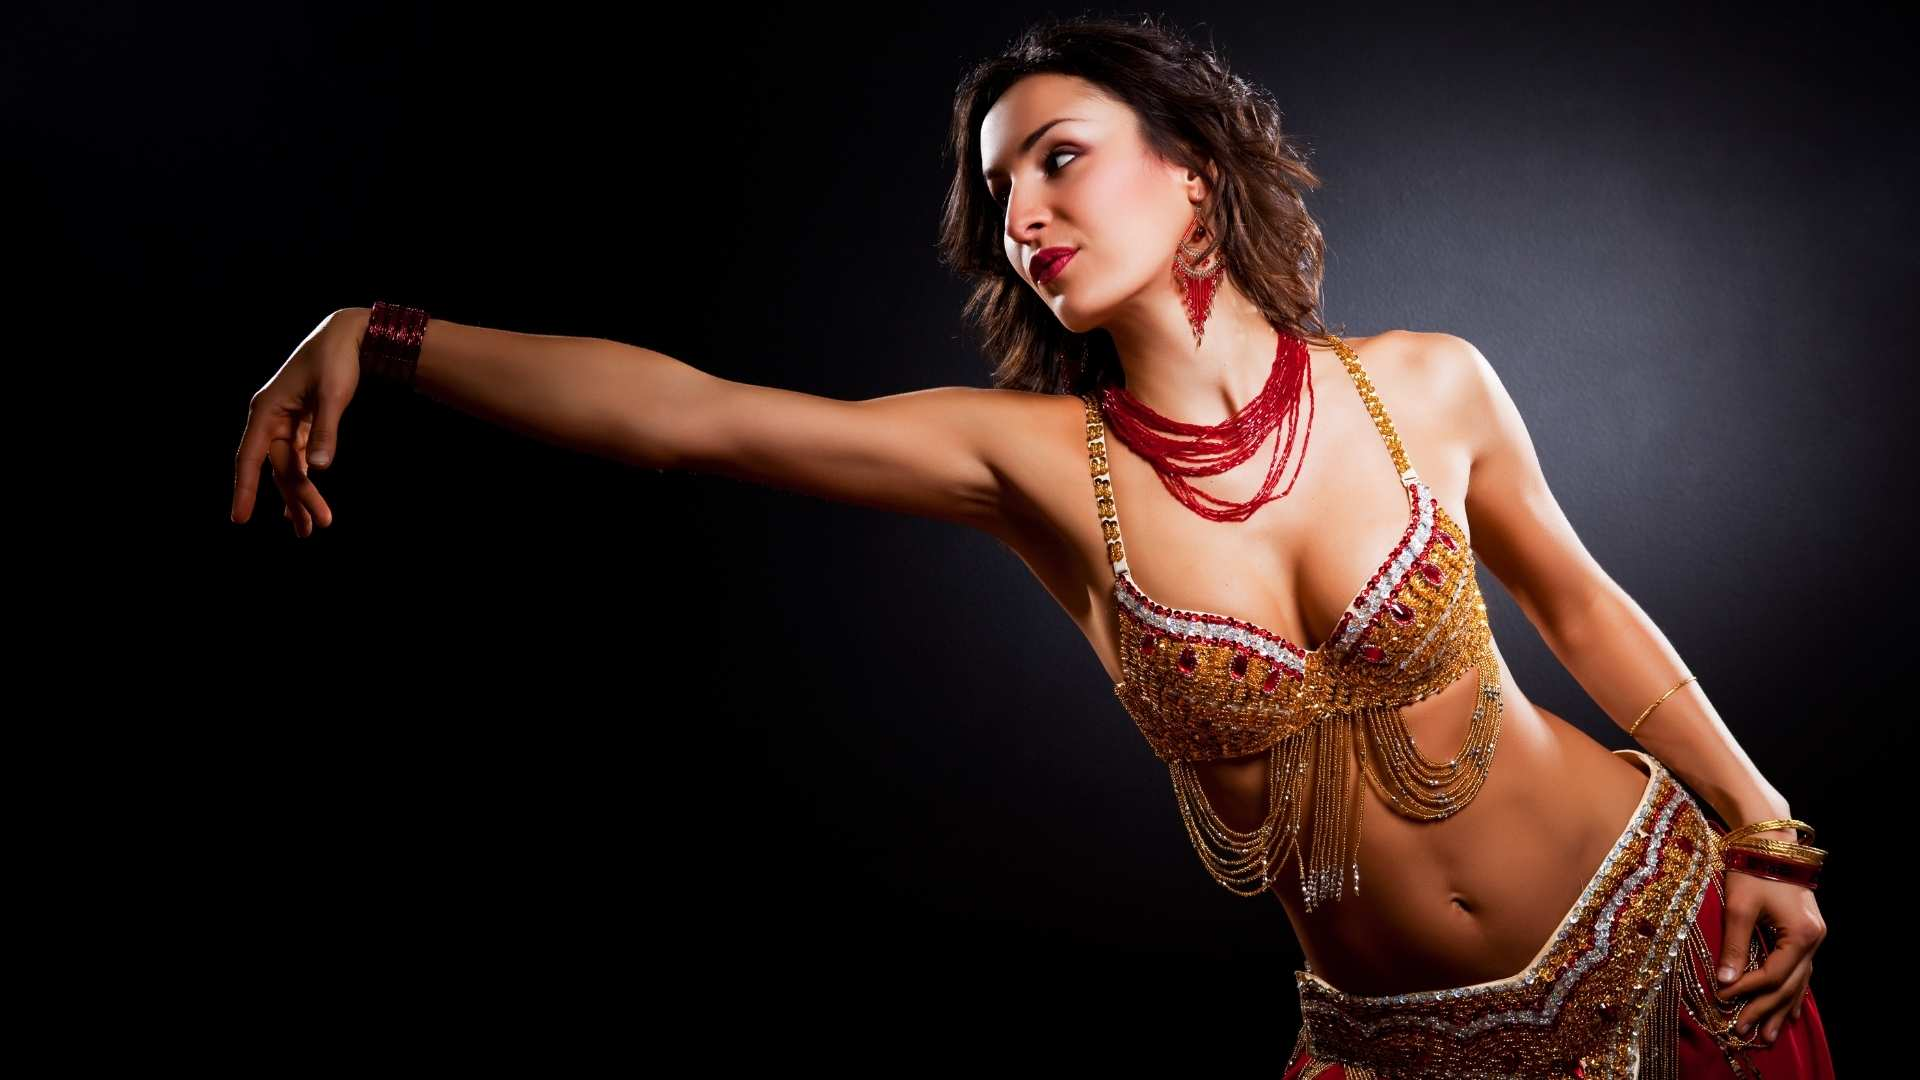 Belly dancing in Malaysia